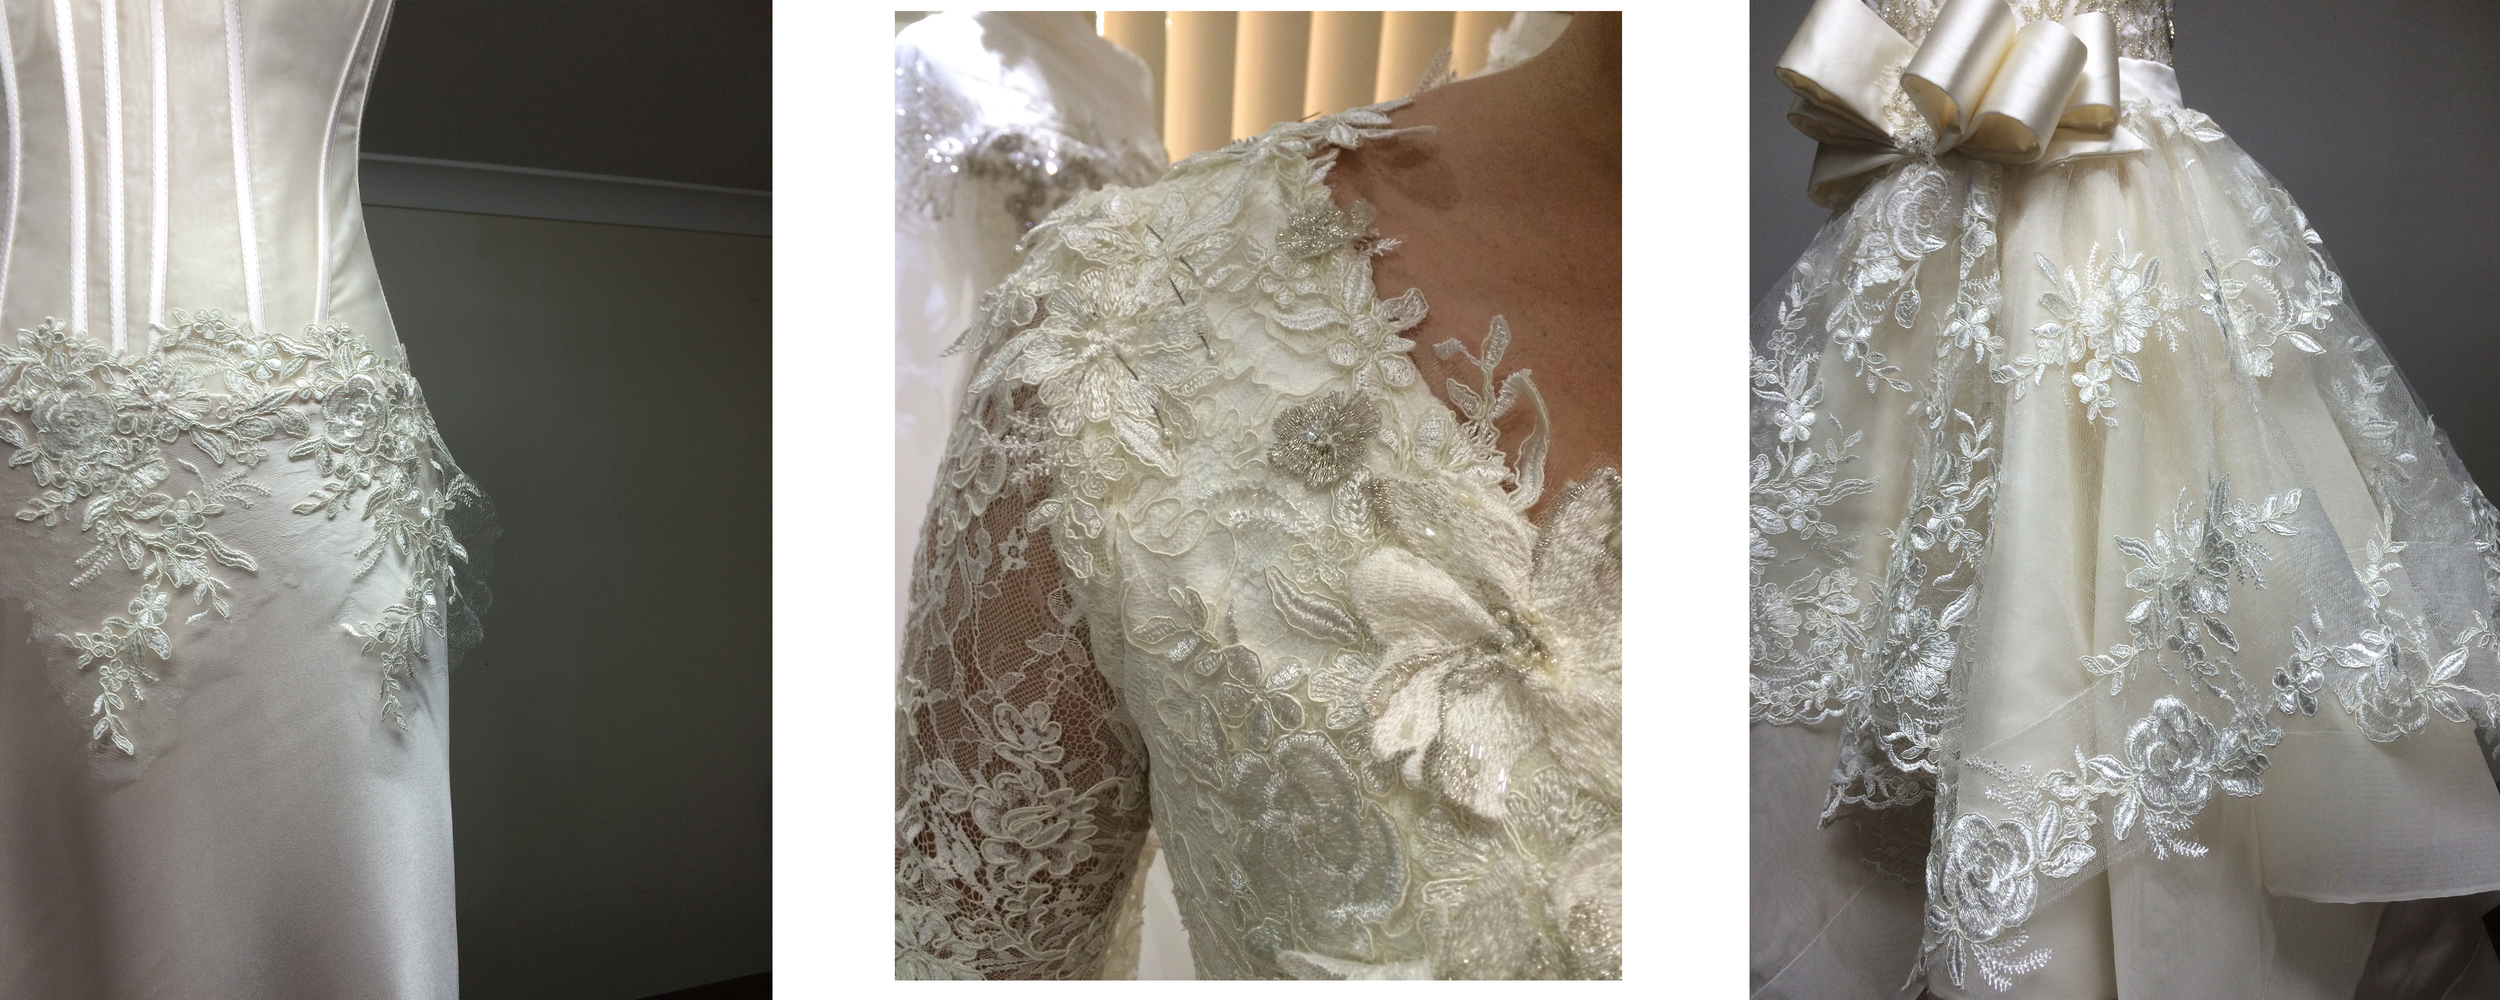 "Wedding dresses using the ""Kelly"" lace"